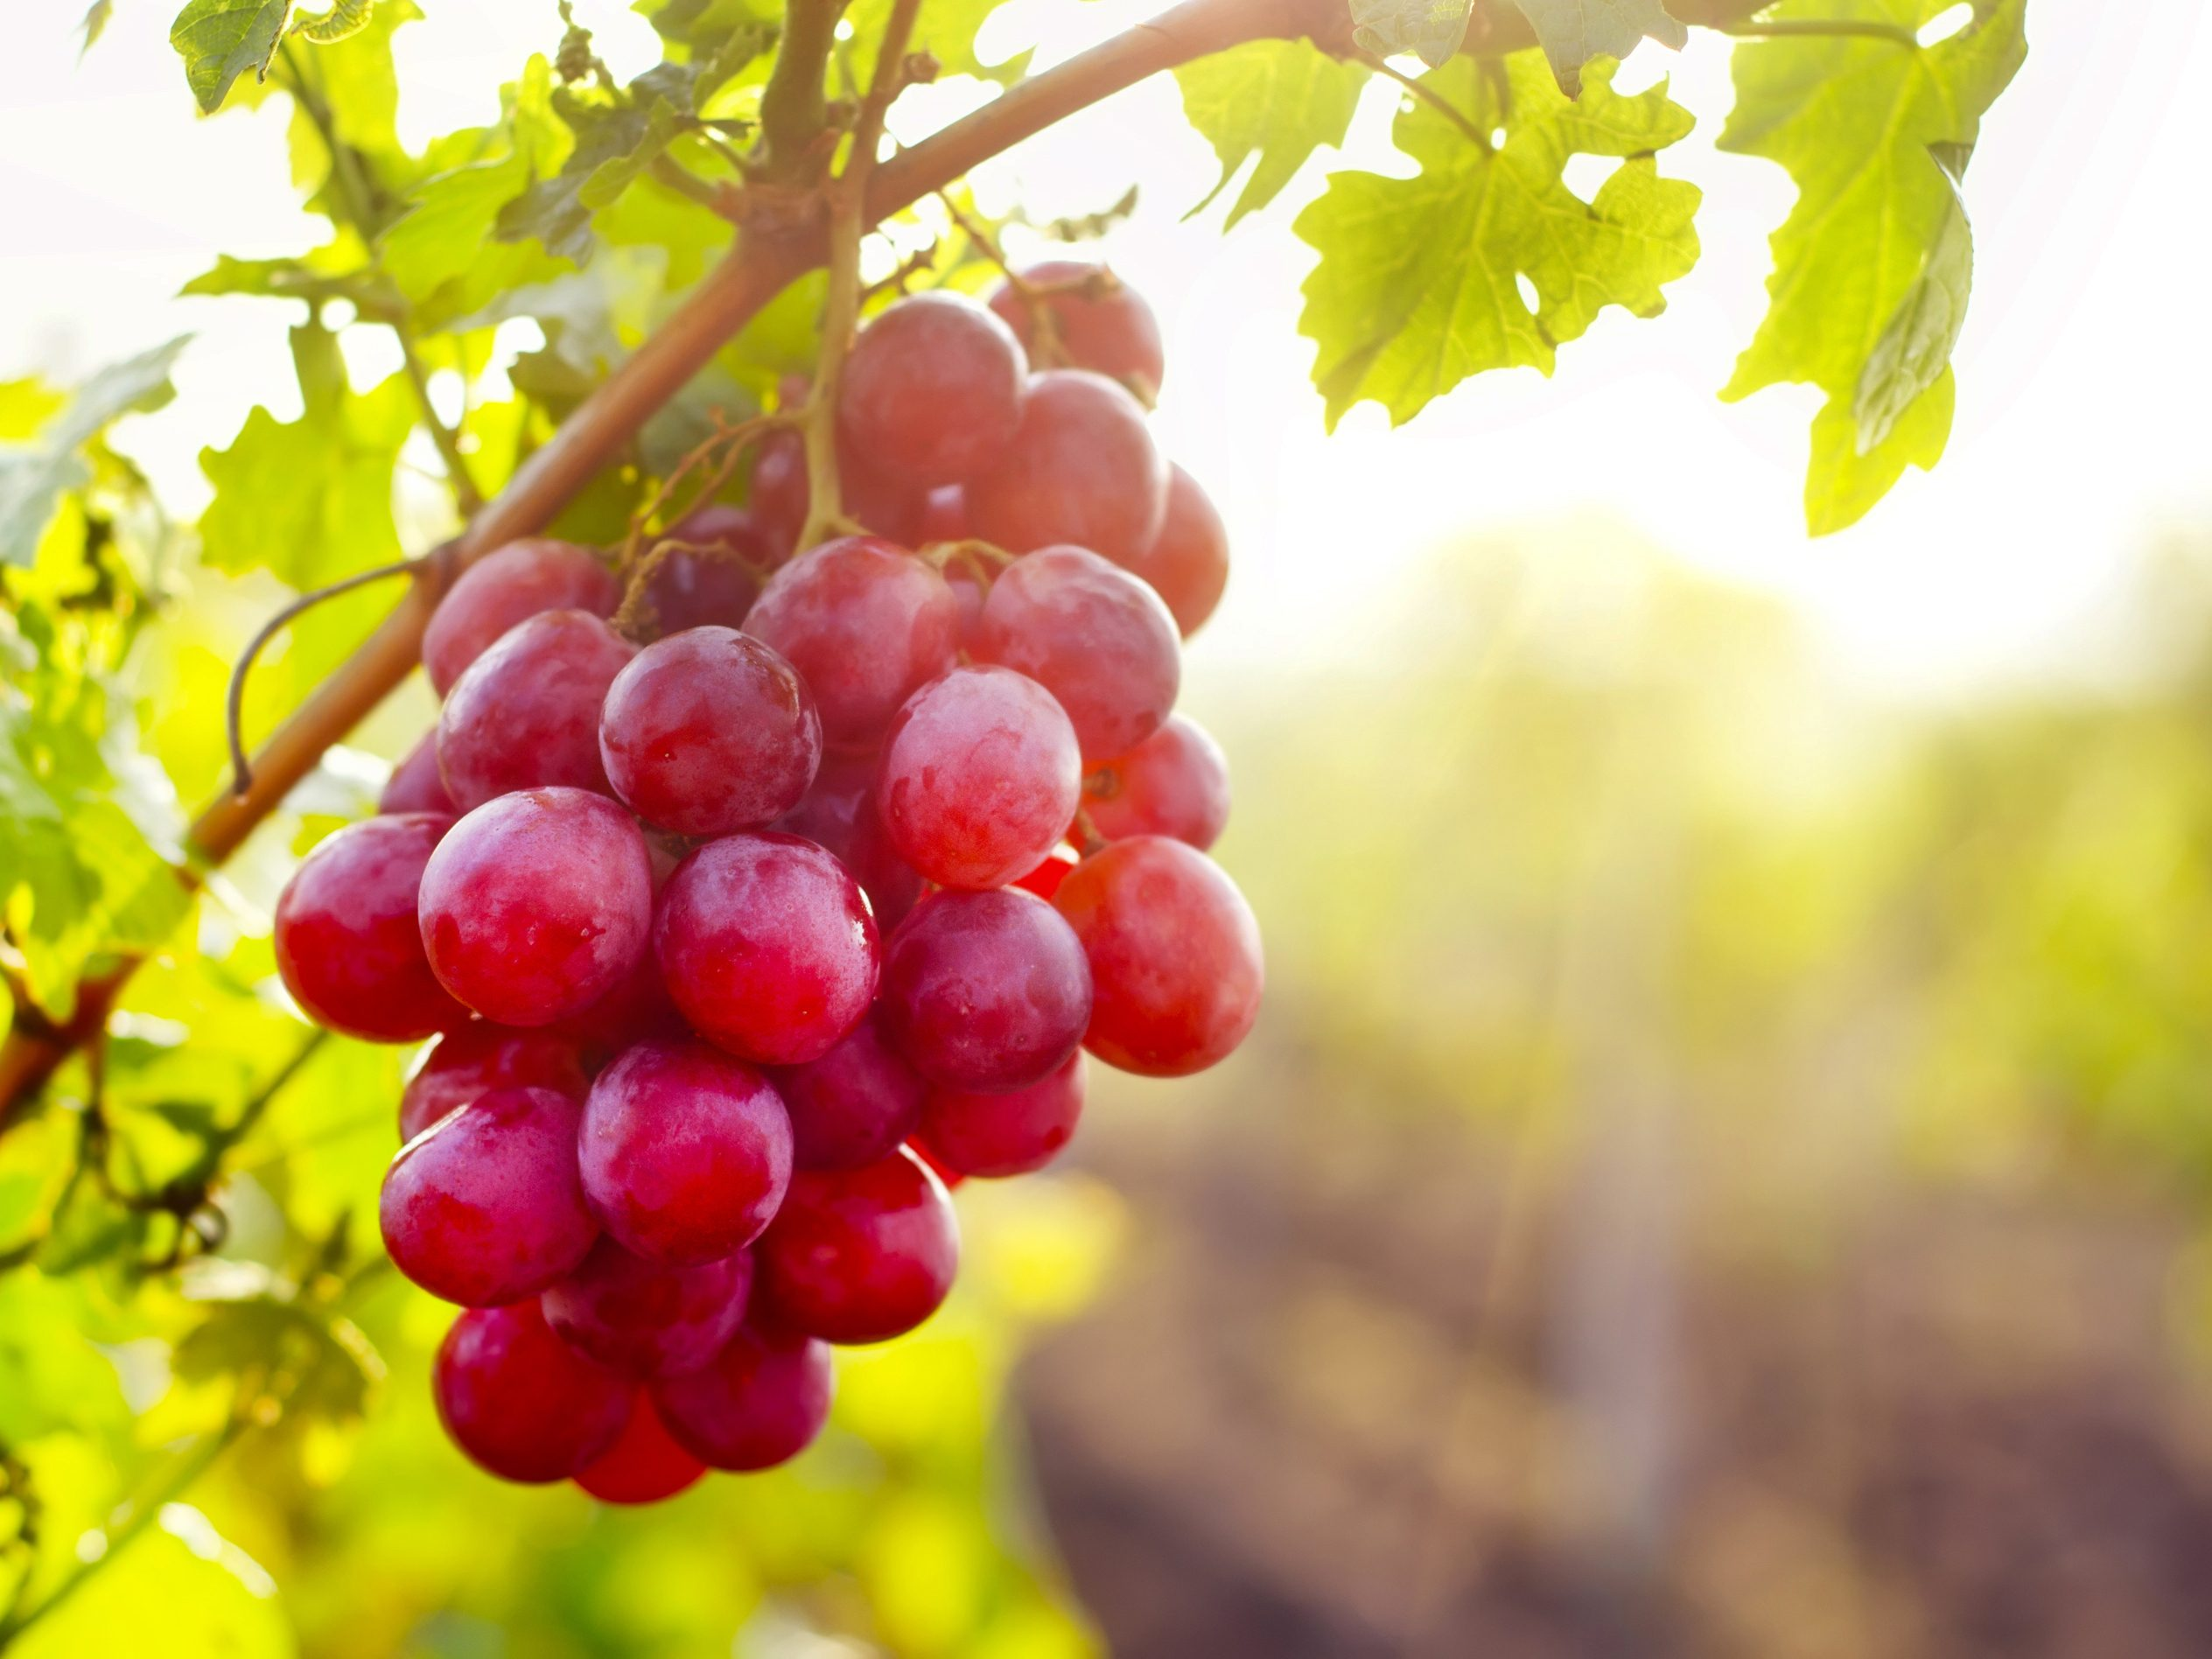 2. Grape seed extract